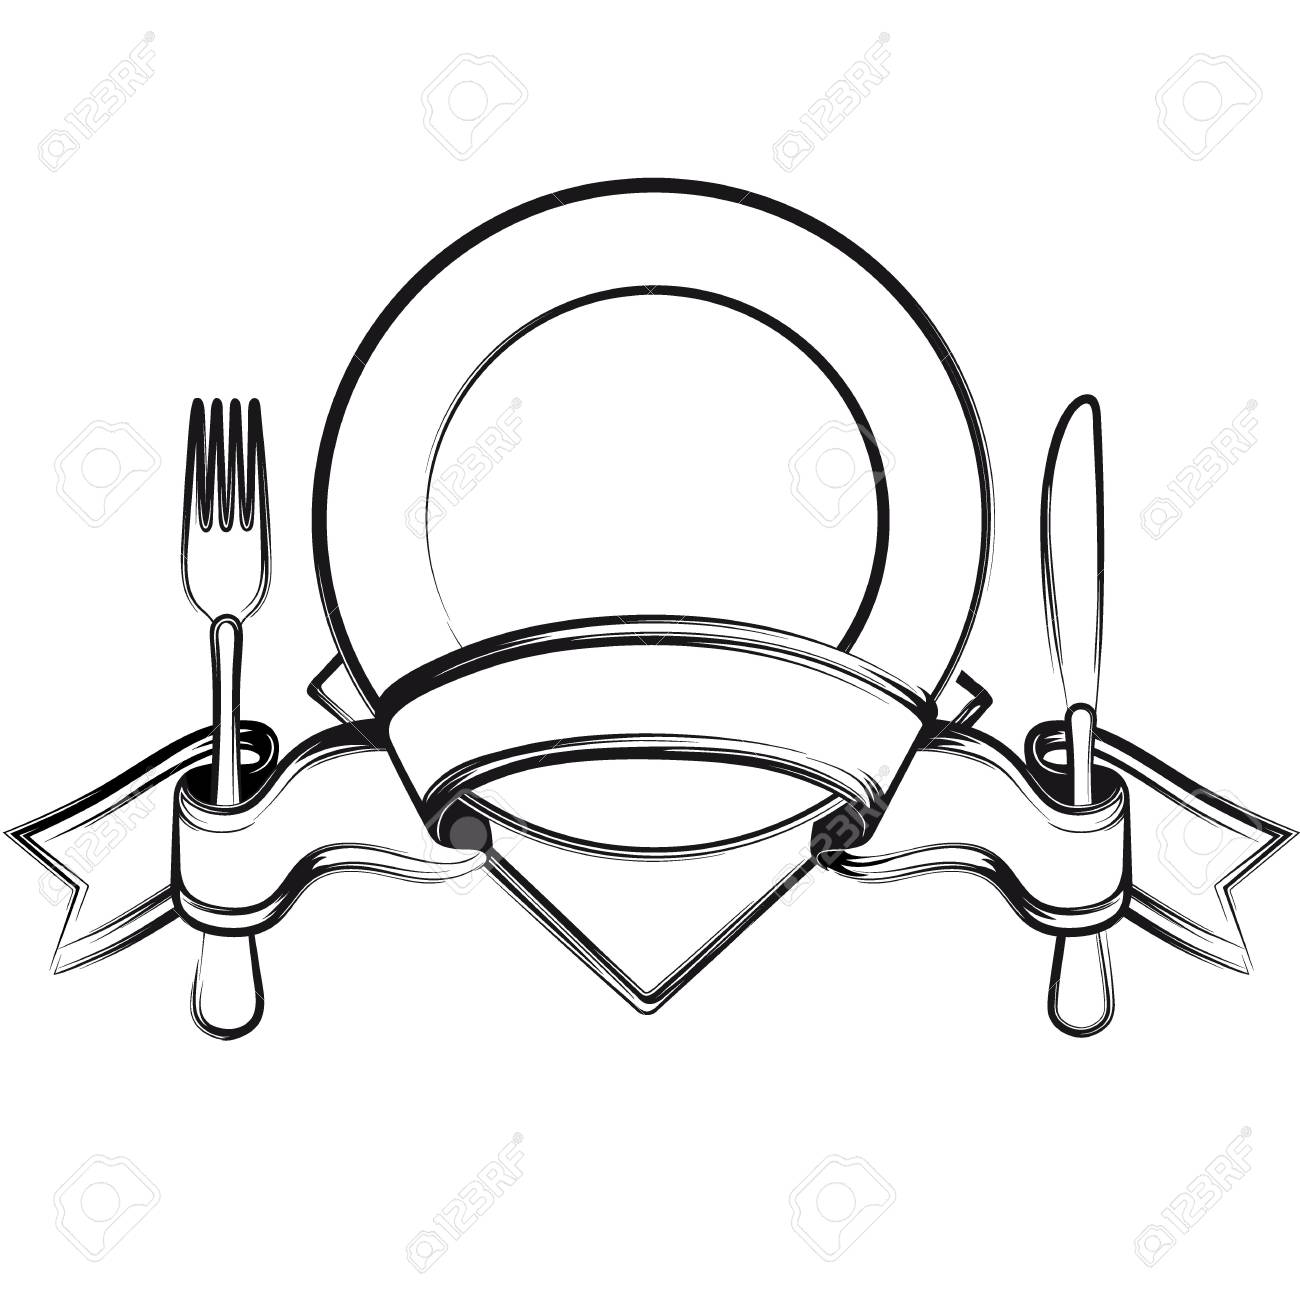 Empty Plate With Ribbon Spoon Knife And Fork On A White Background